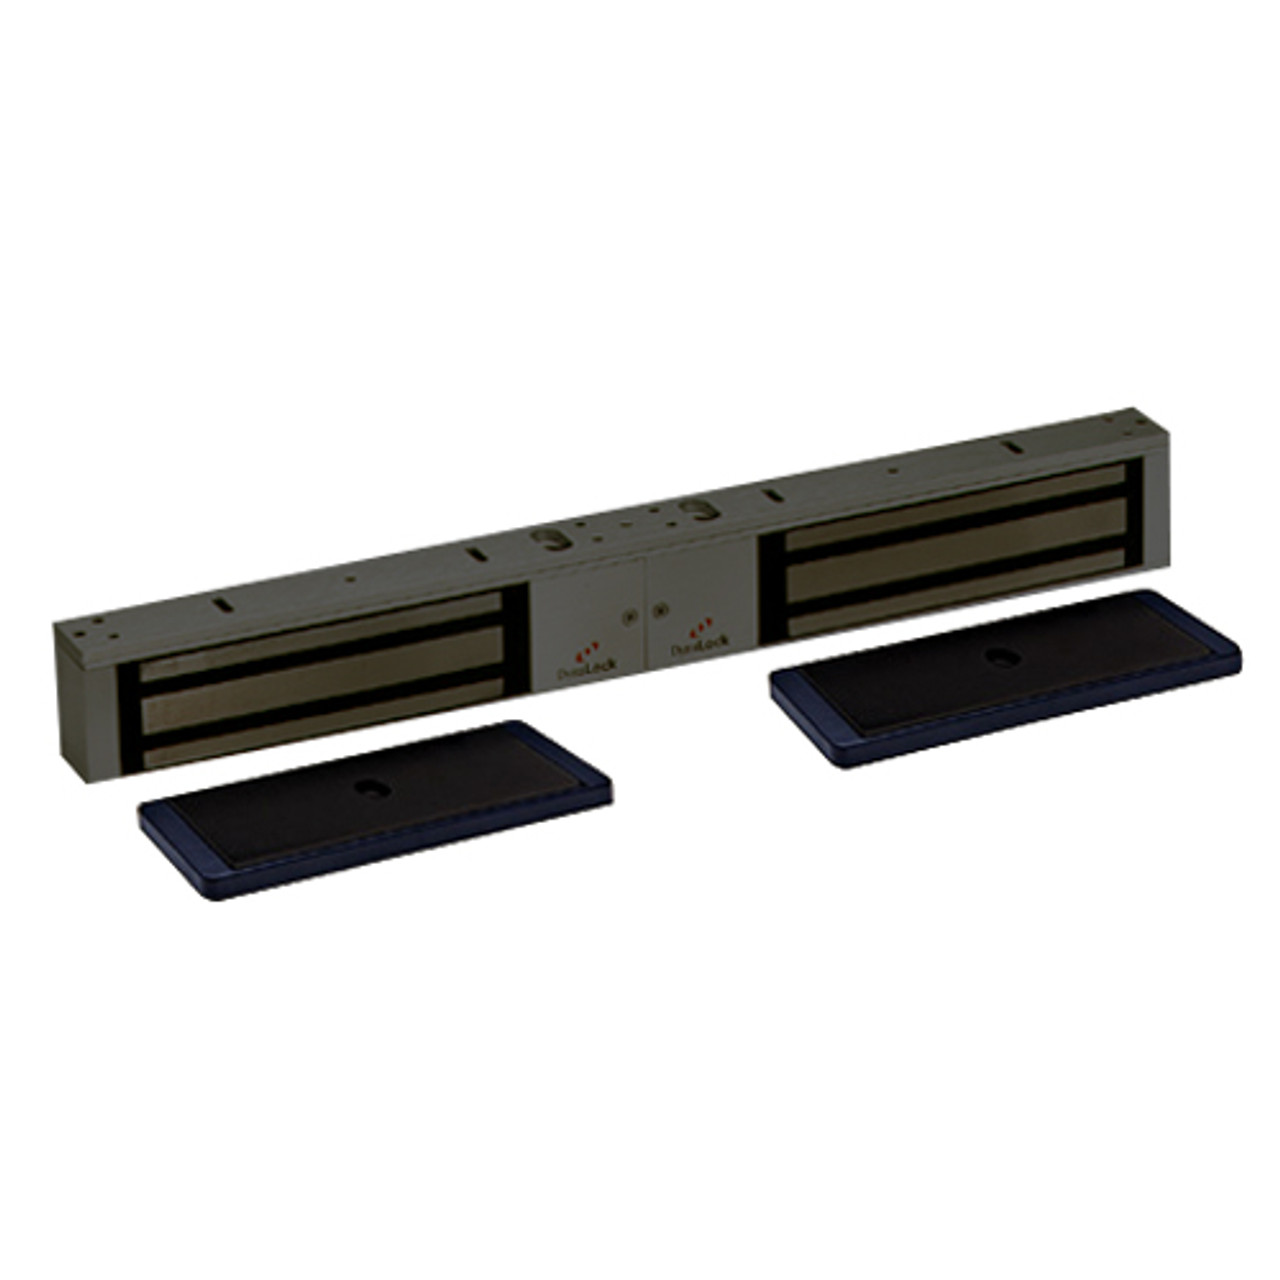 2022-US10B-VOP2 DynaLock 2000 Series 1200 LB Holding Force Double Electromagnetic Lock with Value Option Package in Oil Rubbed Bronze